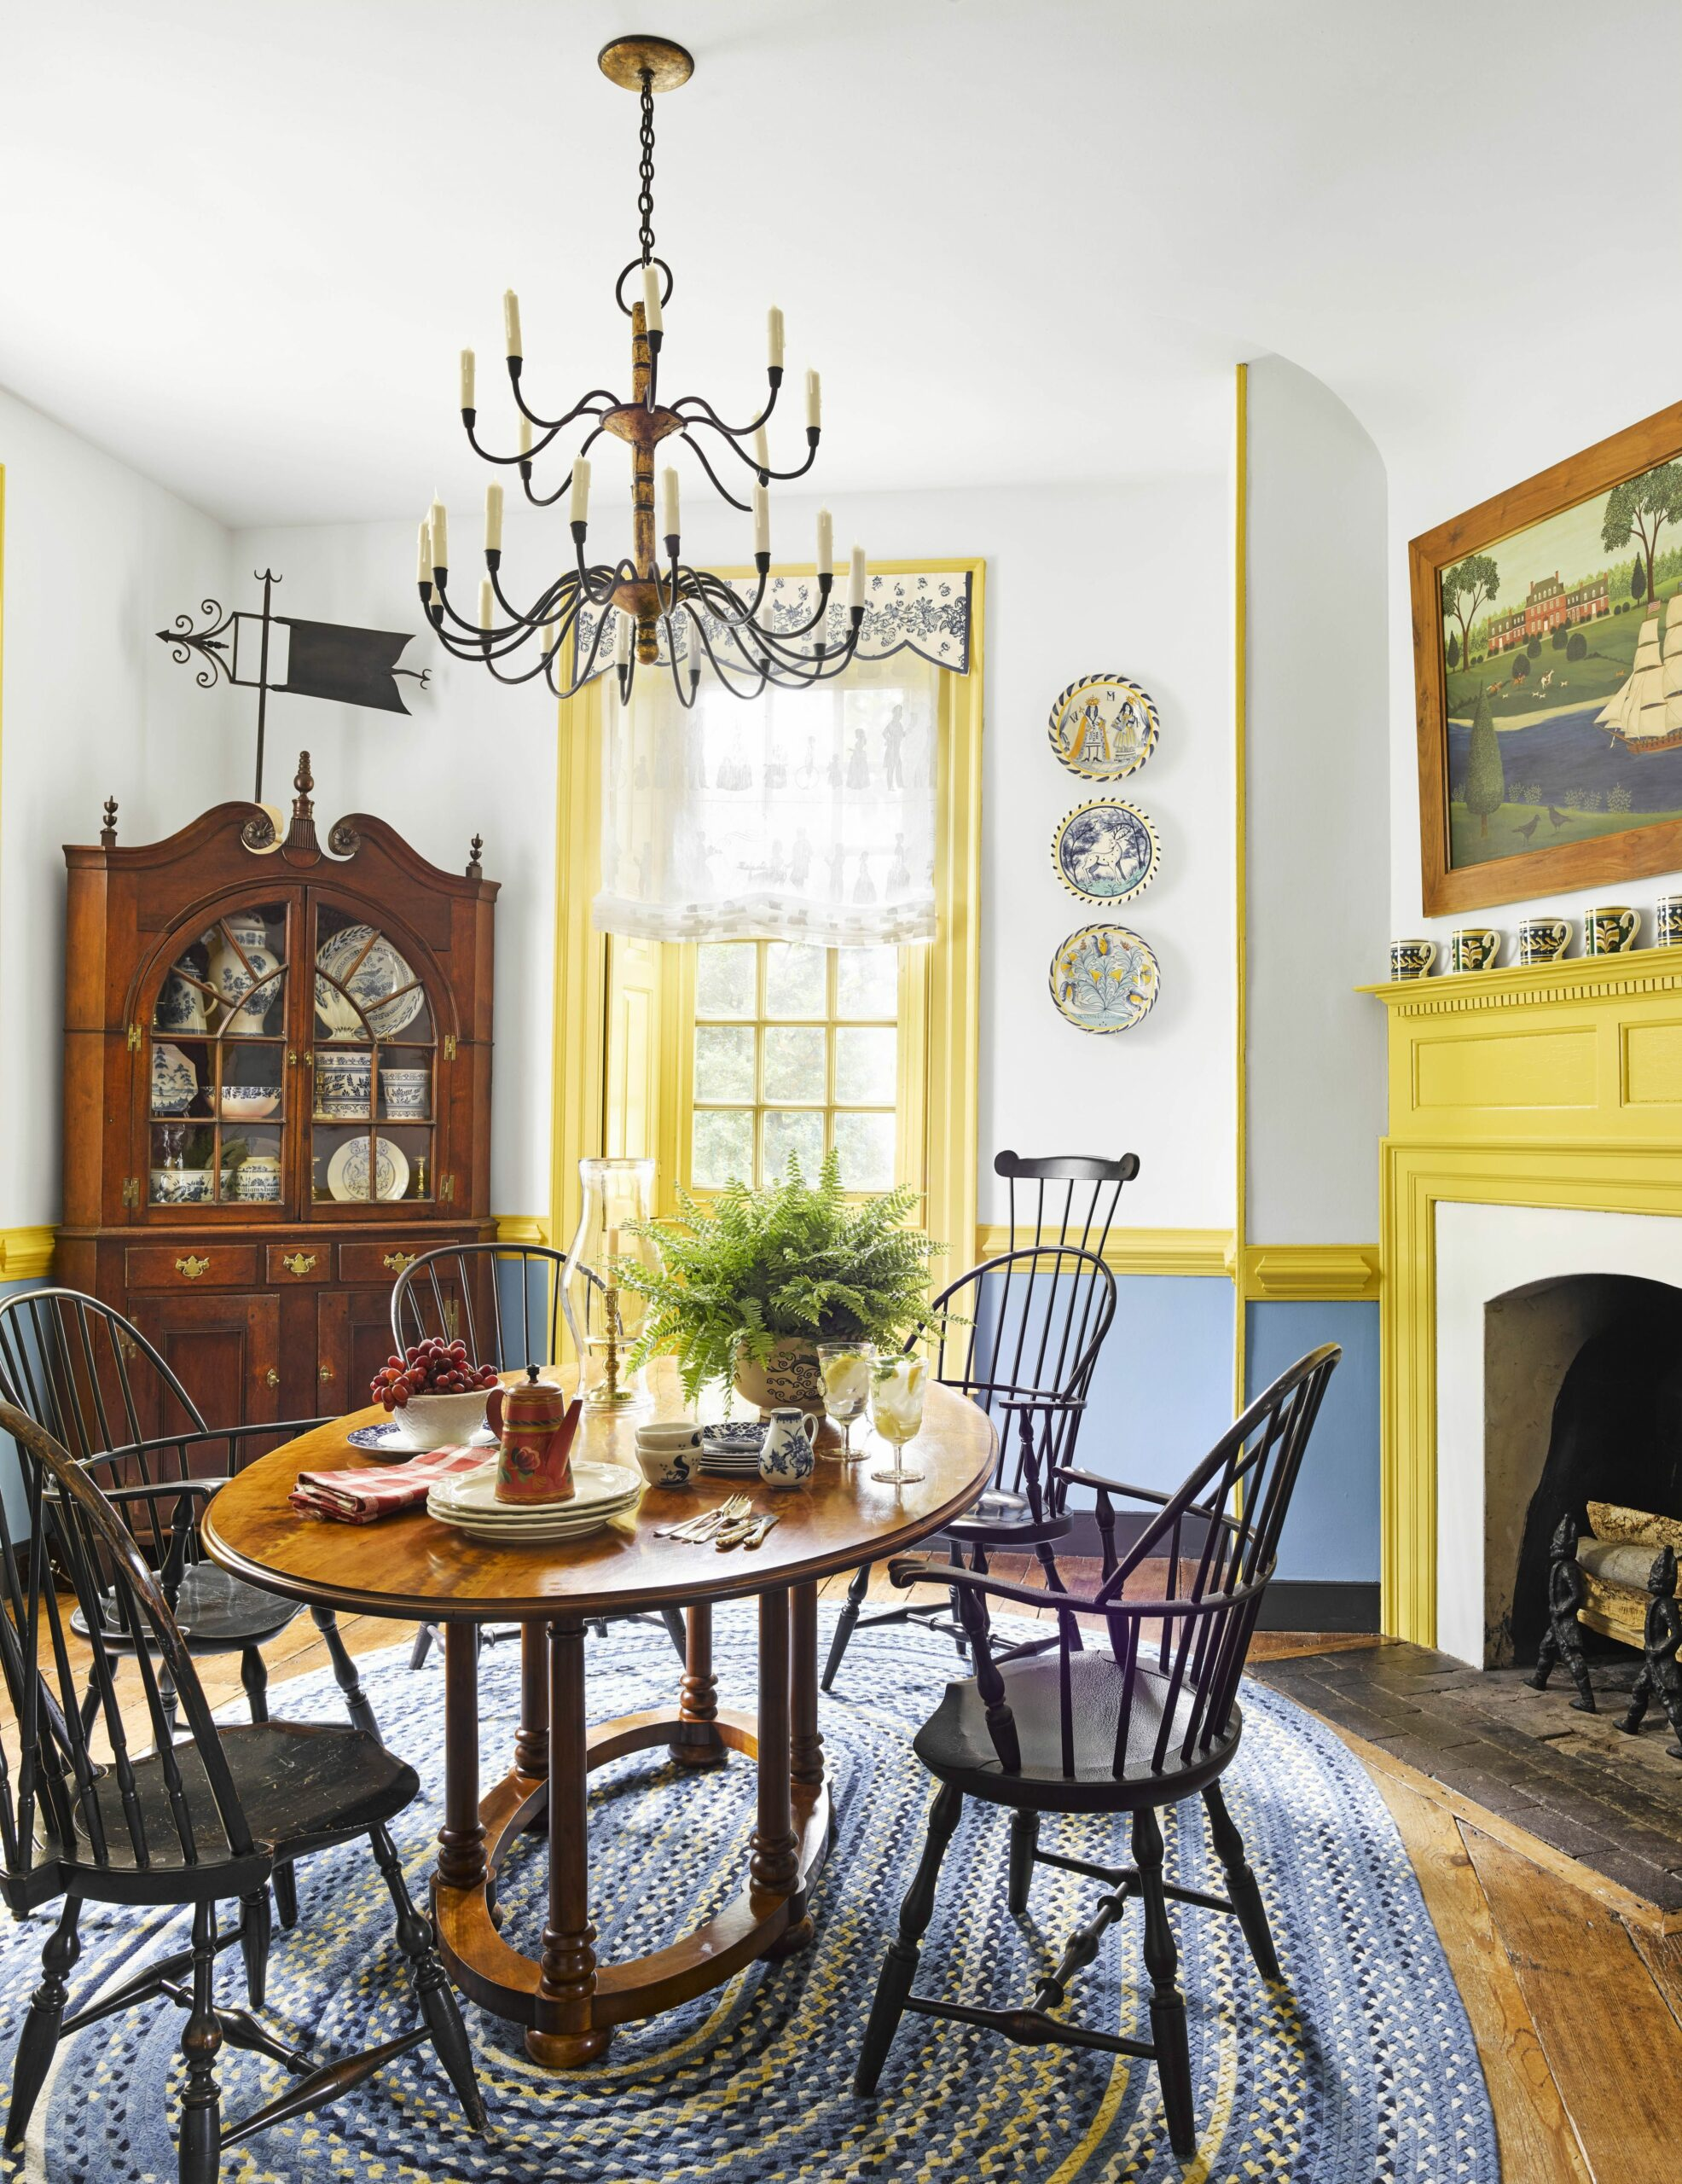 12 Best Dining Room Ideas – Designer Dining Rooms & Decor